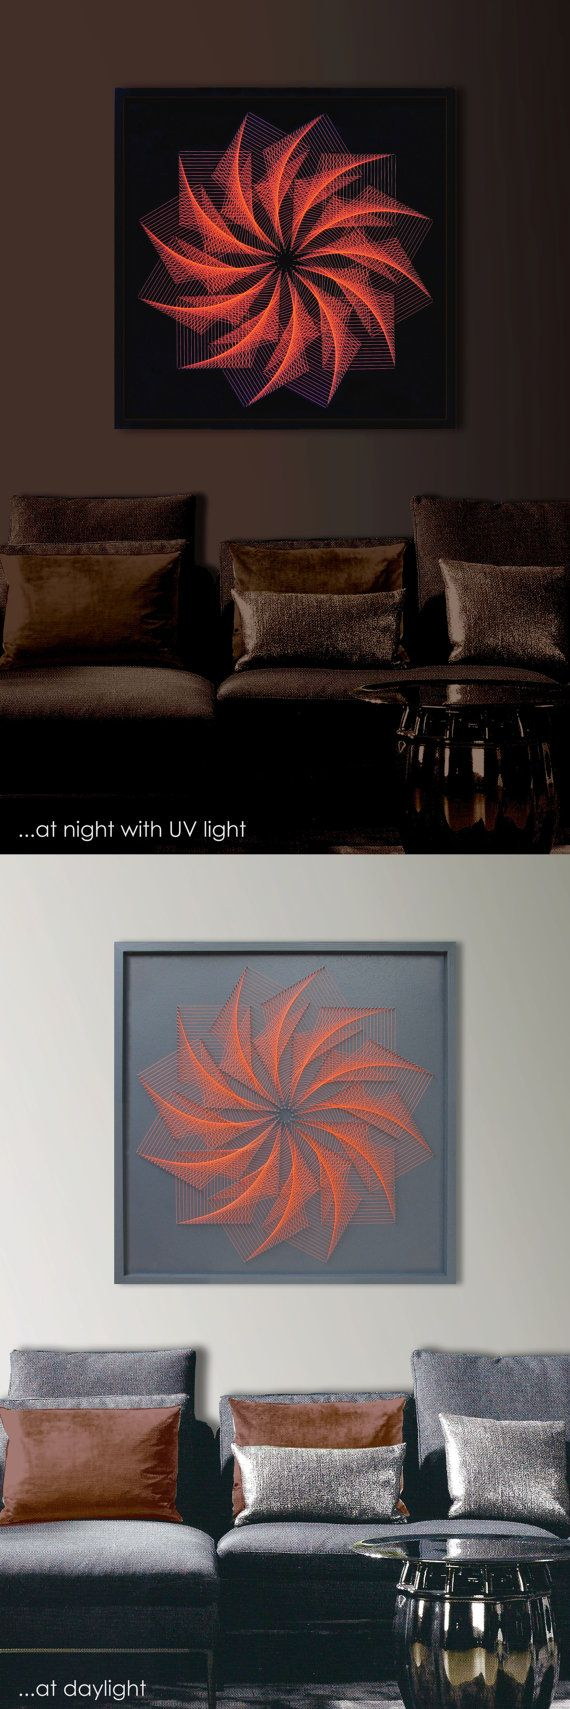 "3D Modern String Art Mandala, Dolphin Gray, Orange, Framed 28,7""x 28,7"" (73x73 cm), UV effect, behind glass, for Office, Home, Club, Bar"